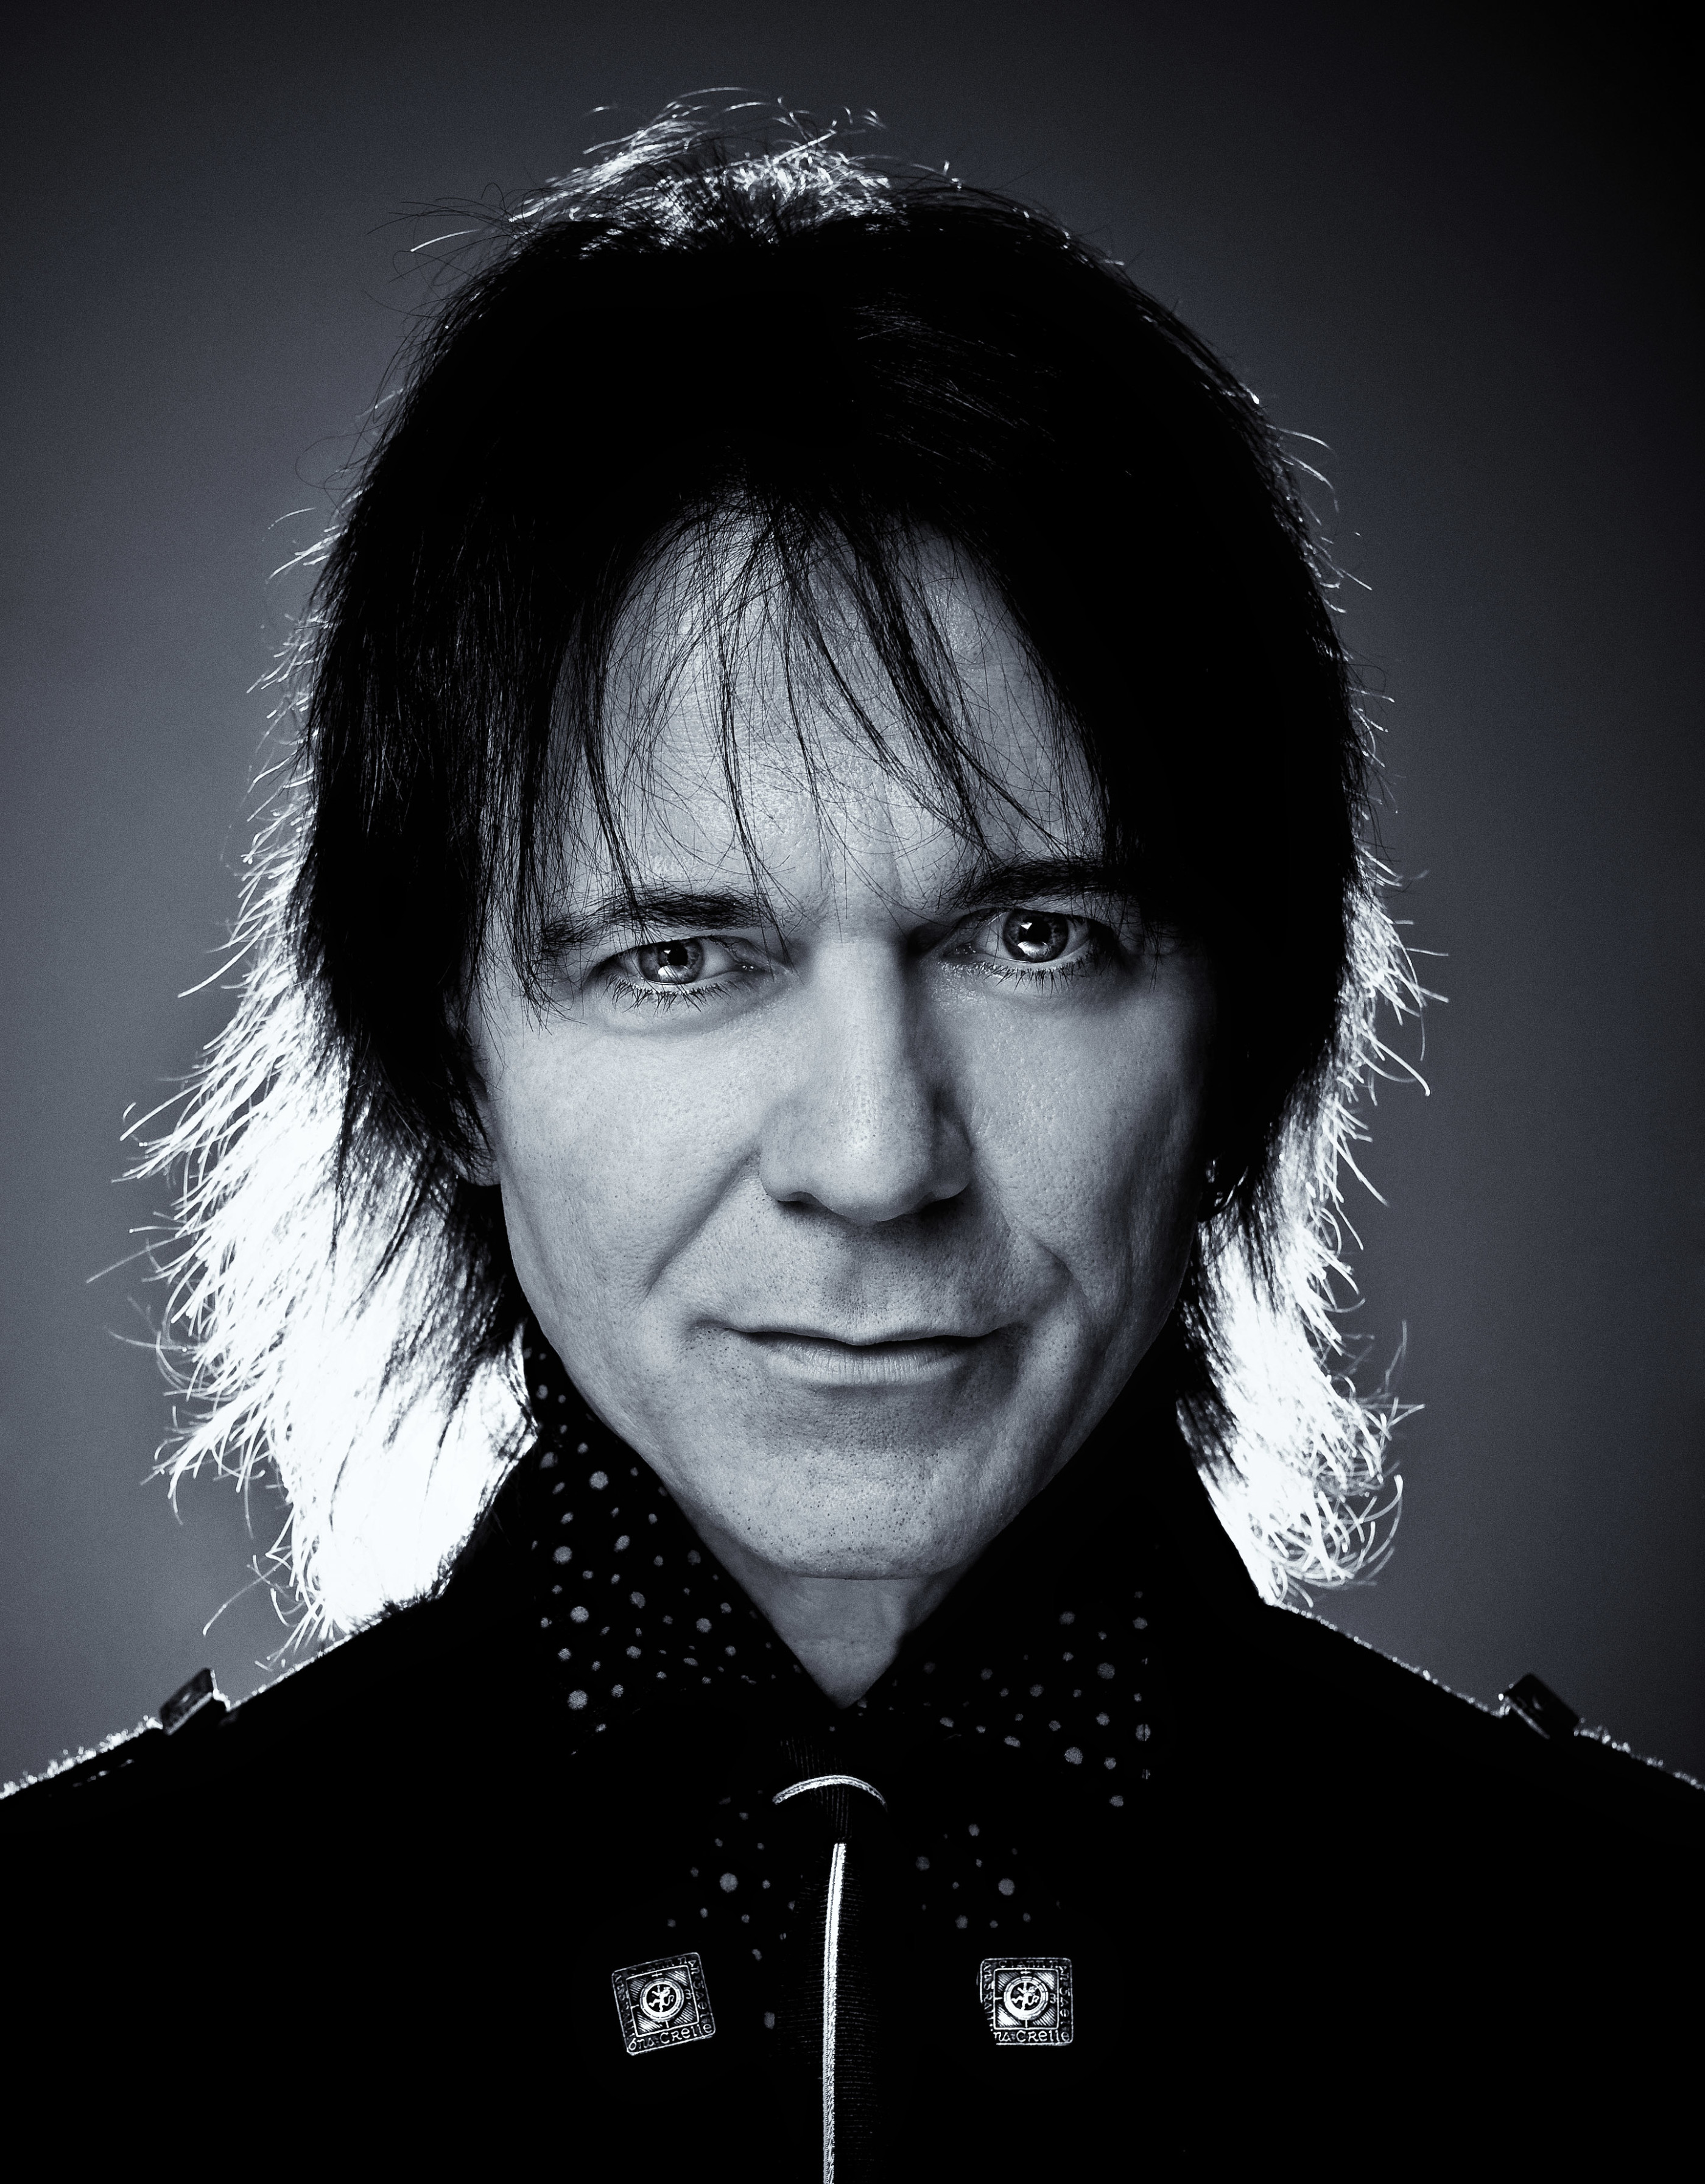 Lawrence Gowan Styx Grand Island